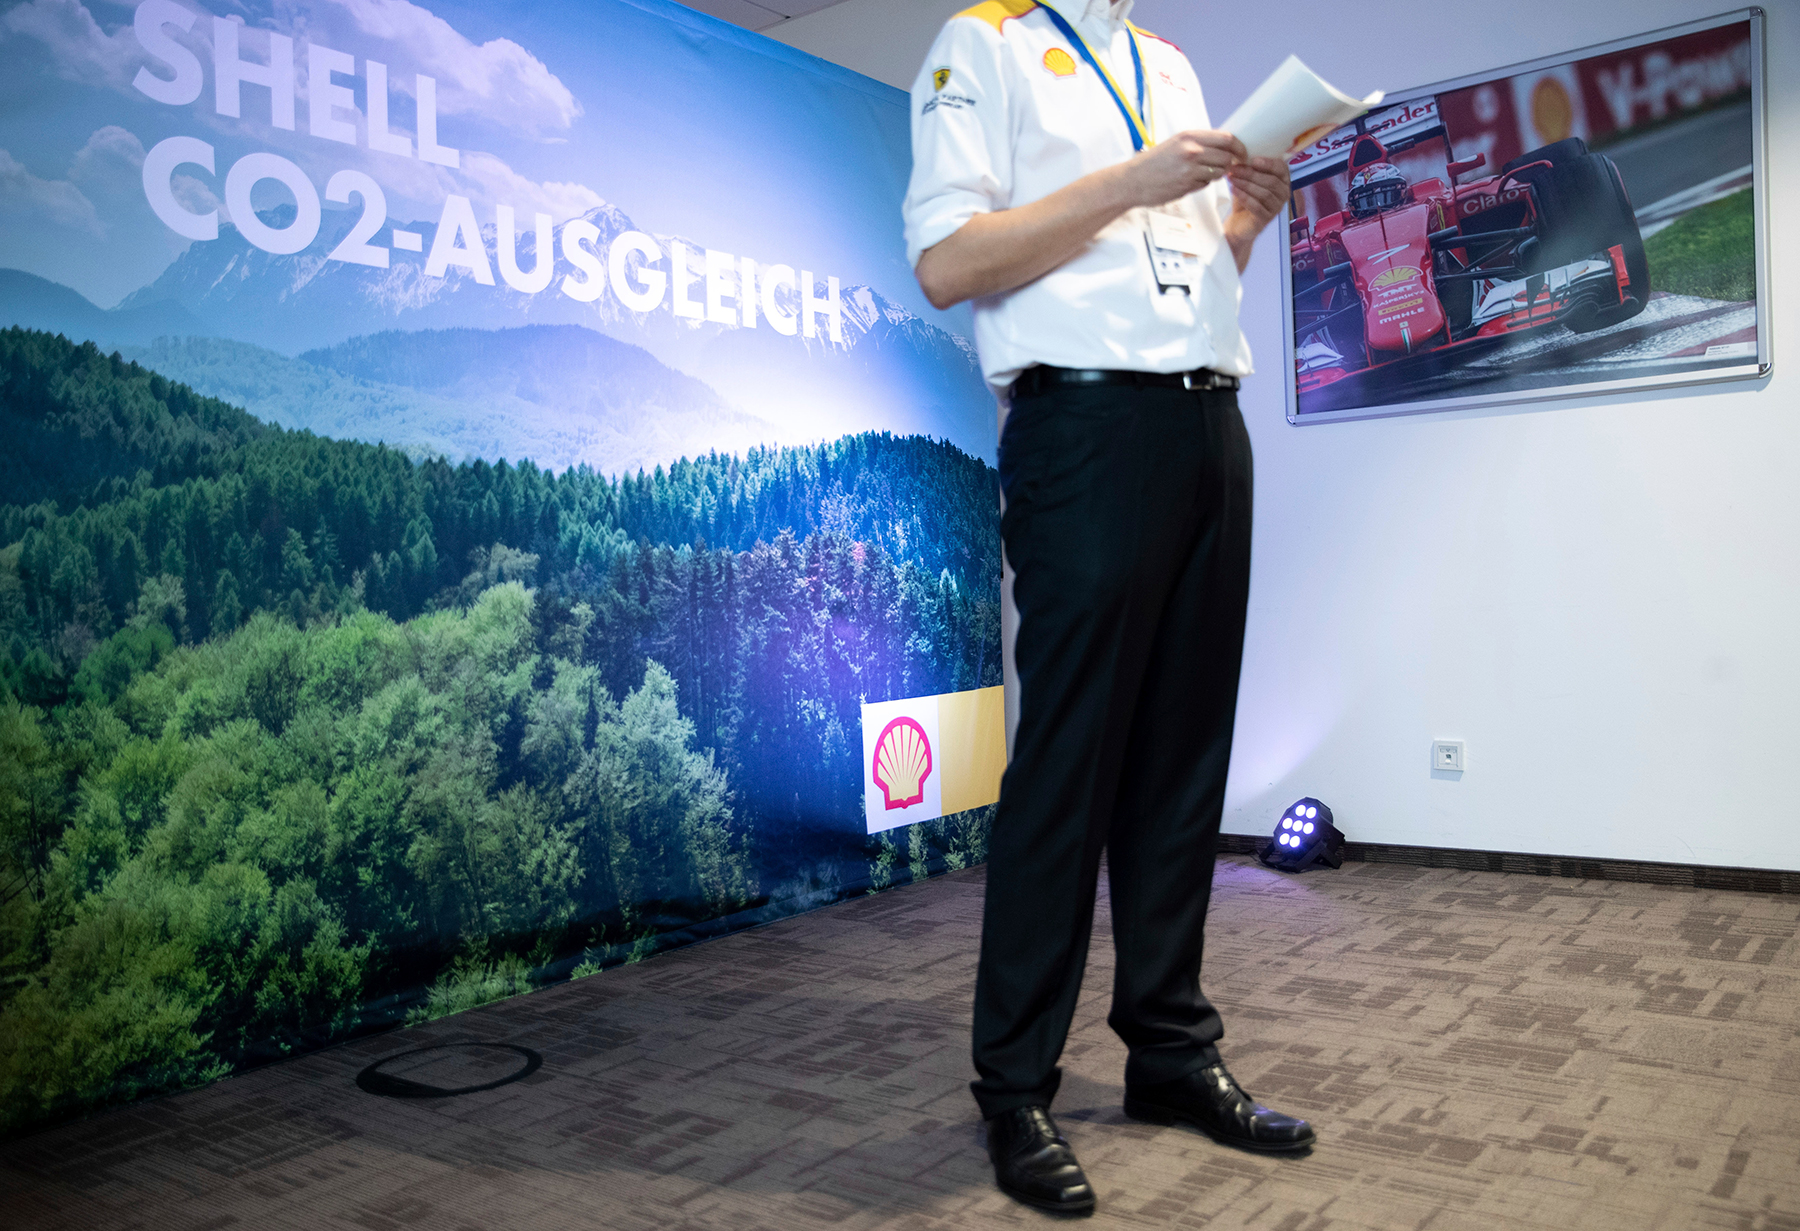 """04 February 2020, Hamburg: A Shell employee explains the planned CO2 offsetting through the preservation and reforestation of forests at a press event organised by Shell Germany on the subject of """"Energy of the Future"""" at the Shell Technology Center. The energy company has set itself the goal of reducing its net CO2 emissions by around half on a global average by 2050. Photo by: Christian Charisius/picture-alliance/dpa/AP Images"""